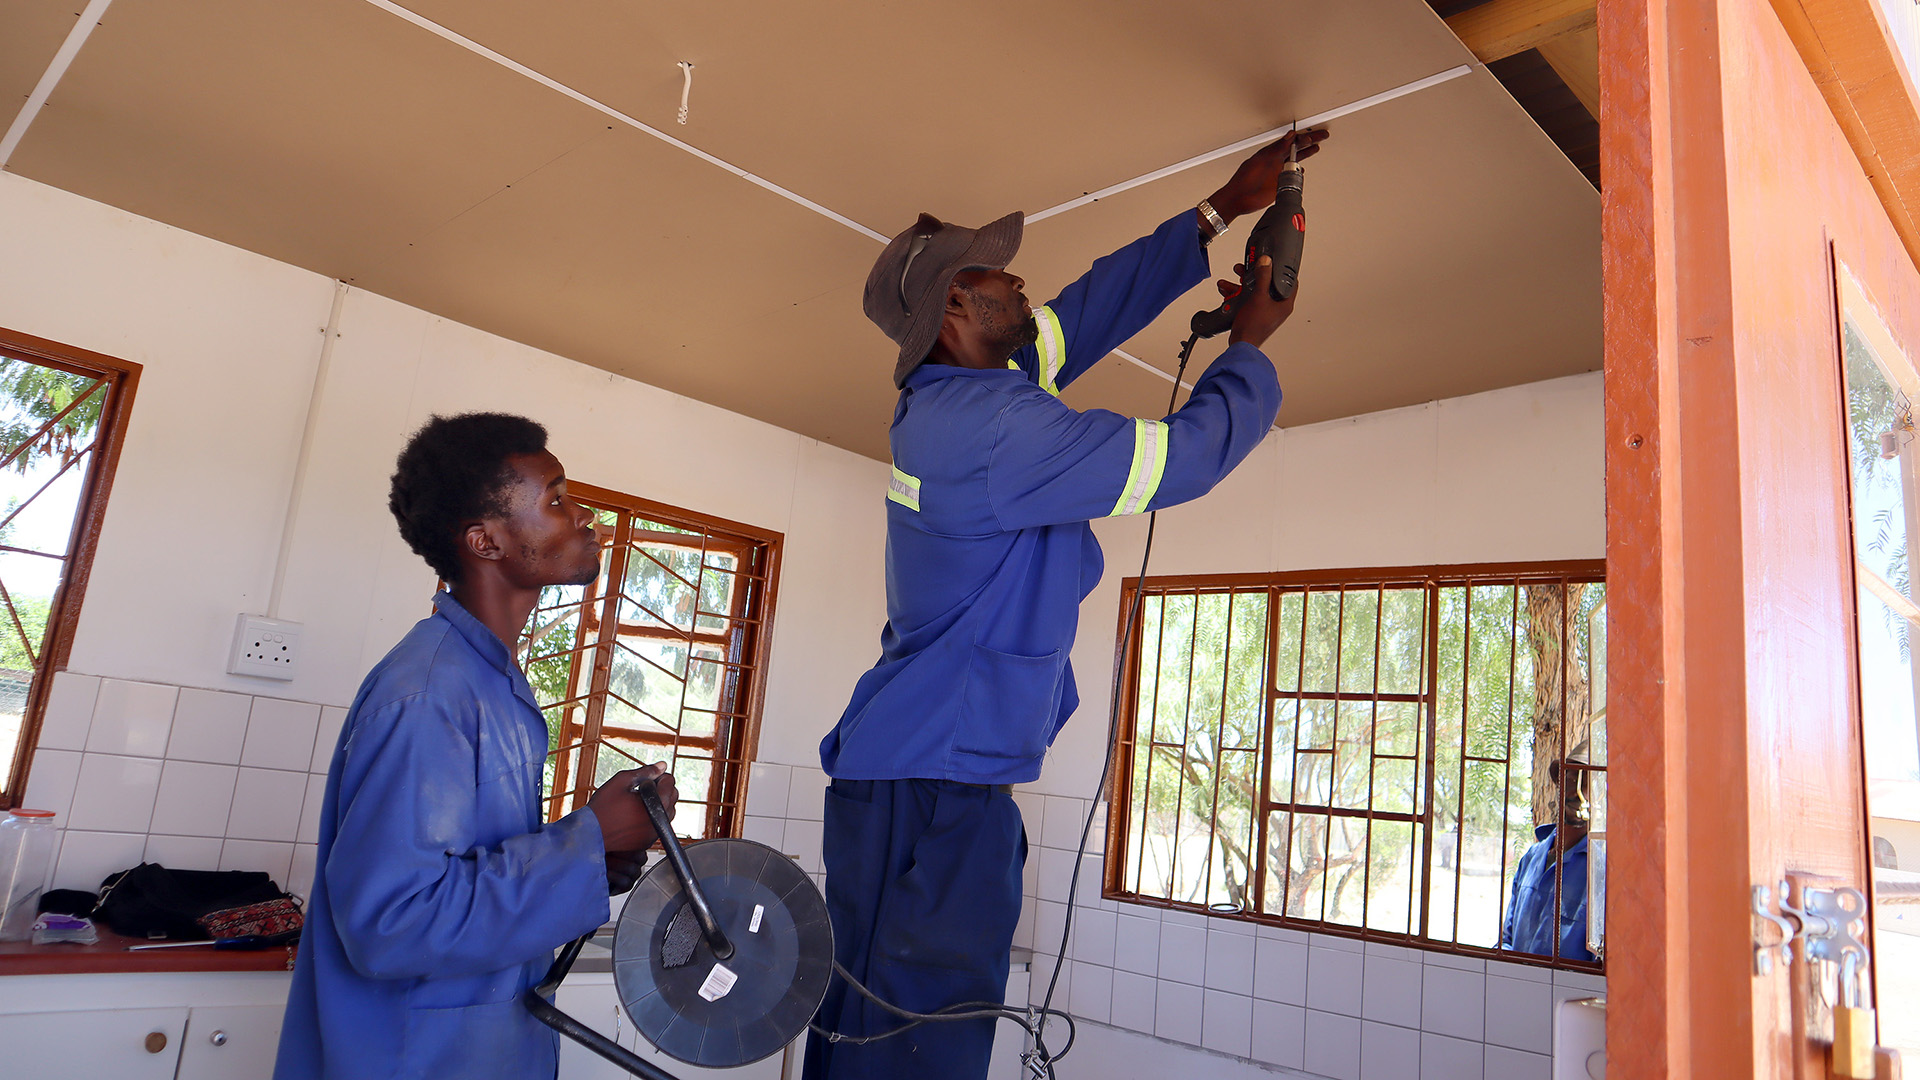 Insertion of a plasterboard ceiling to seal the school garden kitchen